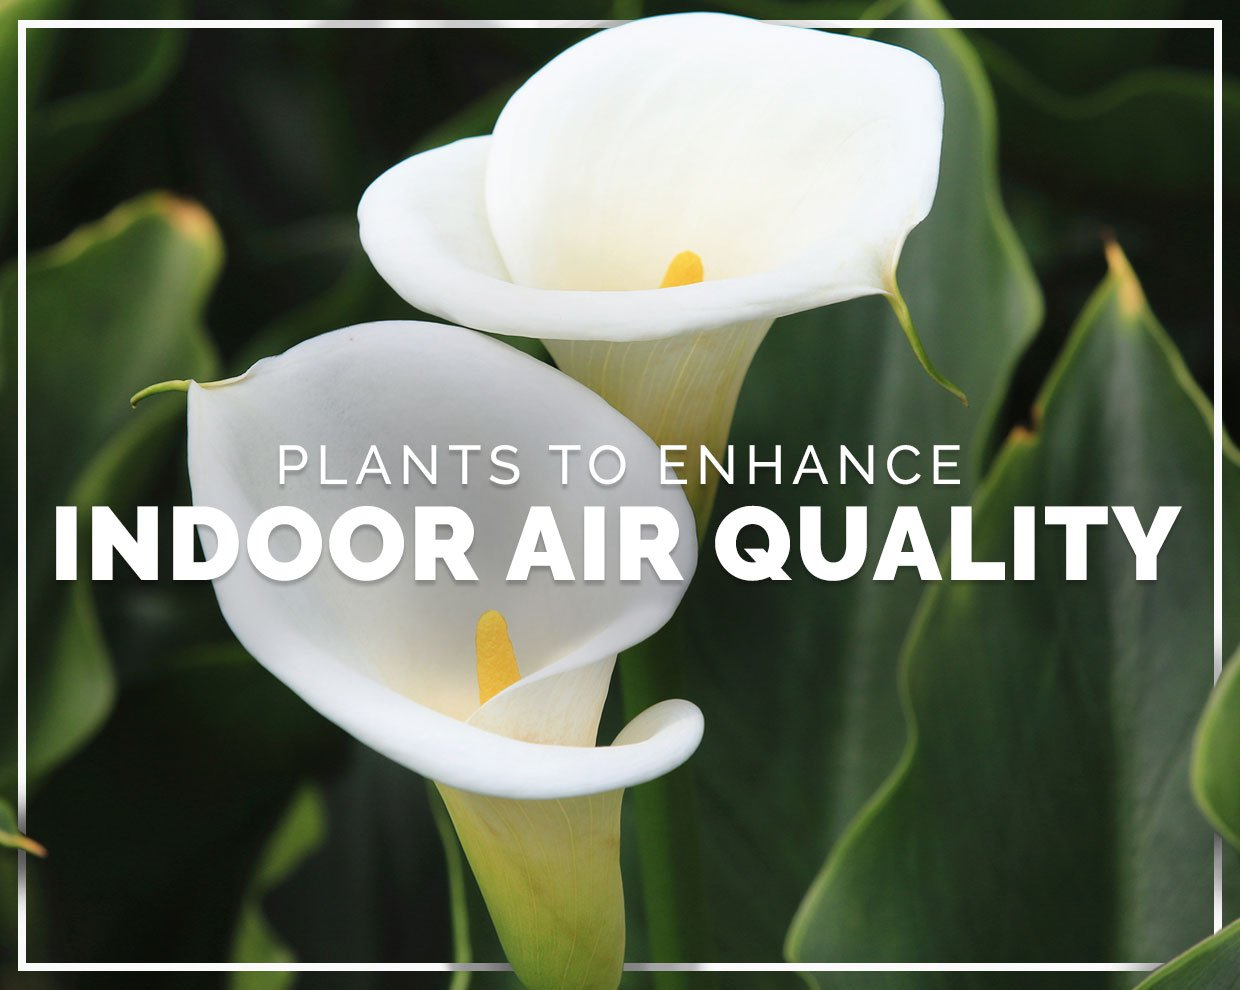 Plants to enhance your indoor air quality at home or work